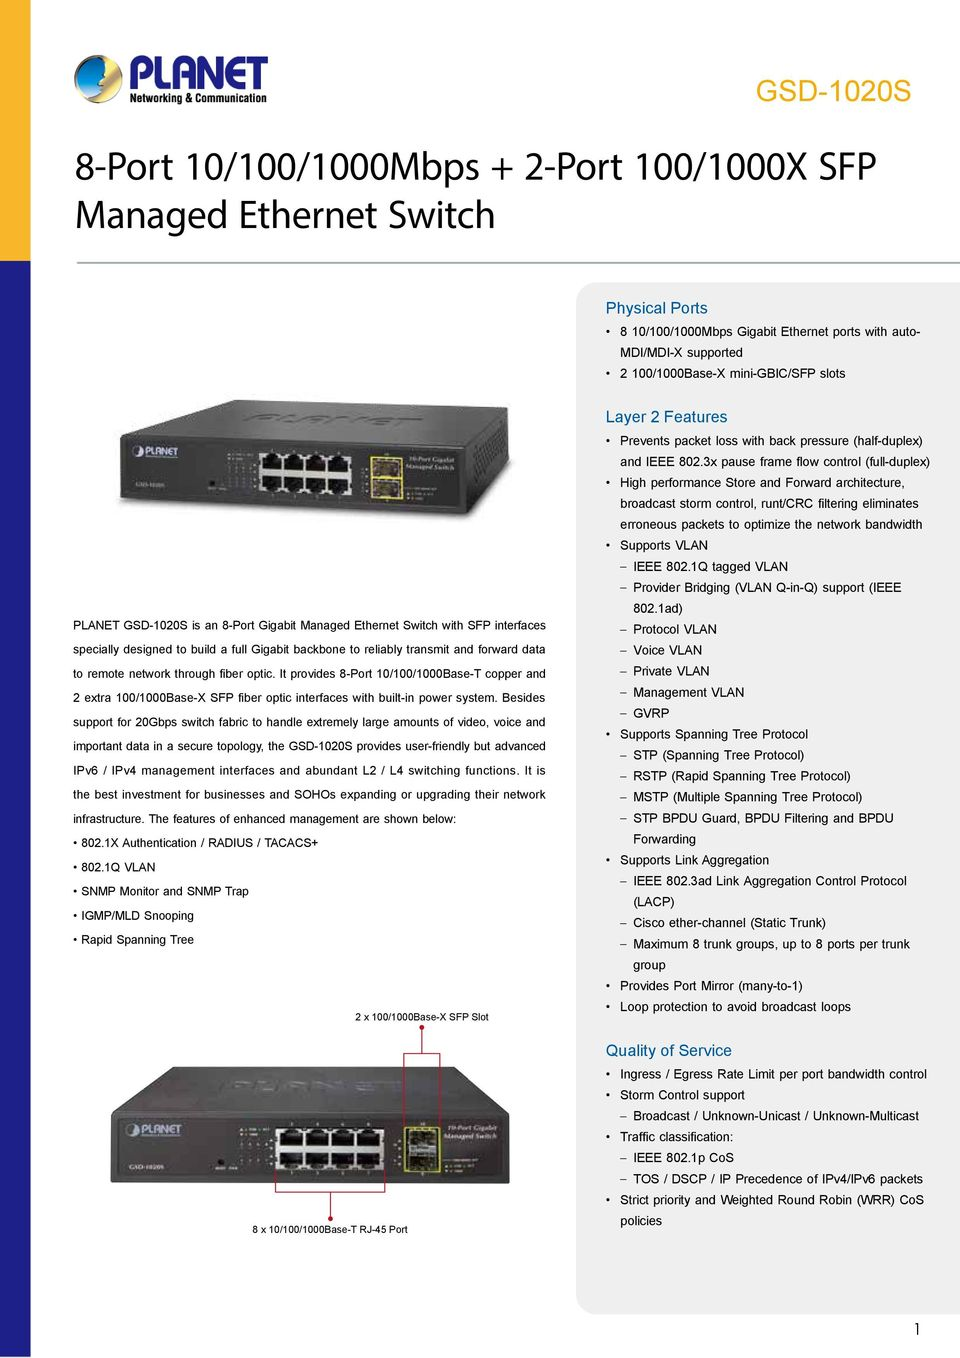 It provides 8-Port 10/100/Base-T copper and 2 extra 100/Base-X SFP fiber optic interfaces with built-in power system.